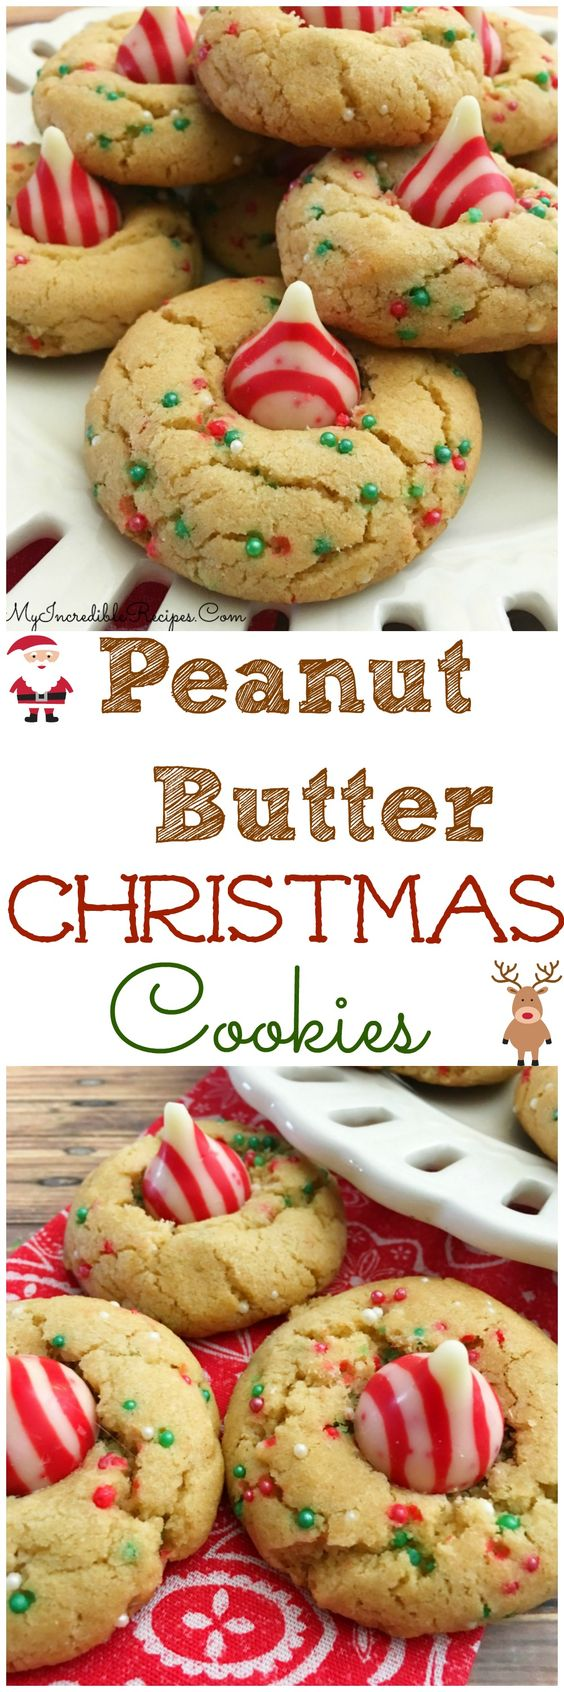 Peanut Butter Christmas Cookies!